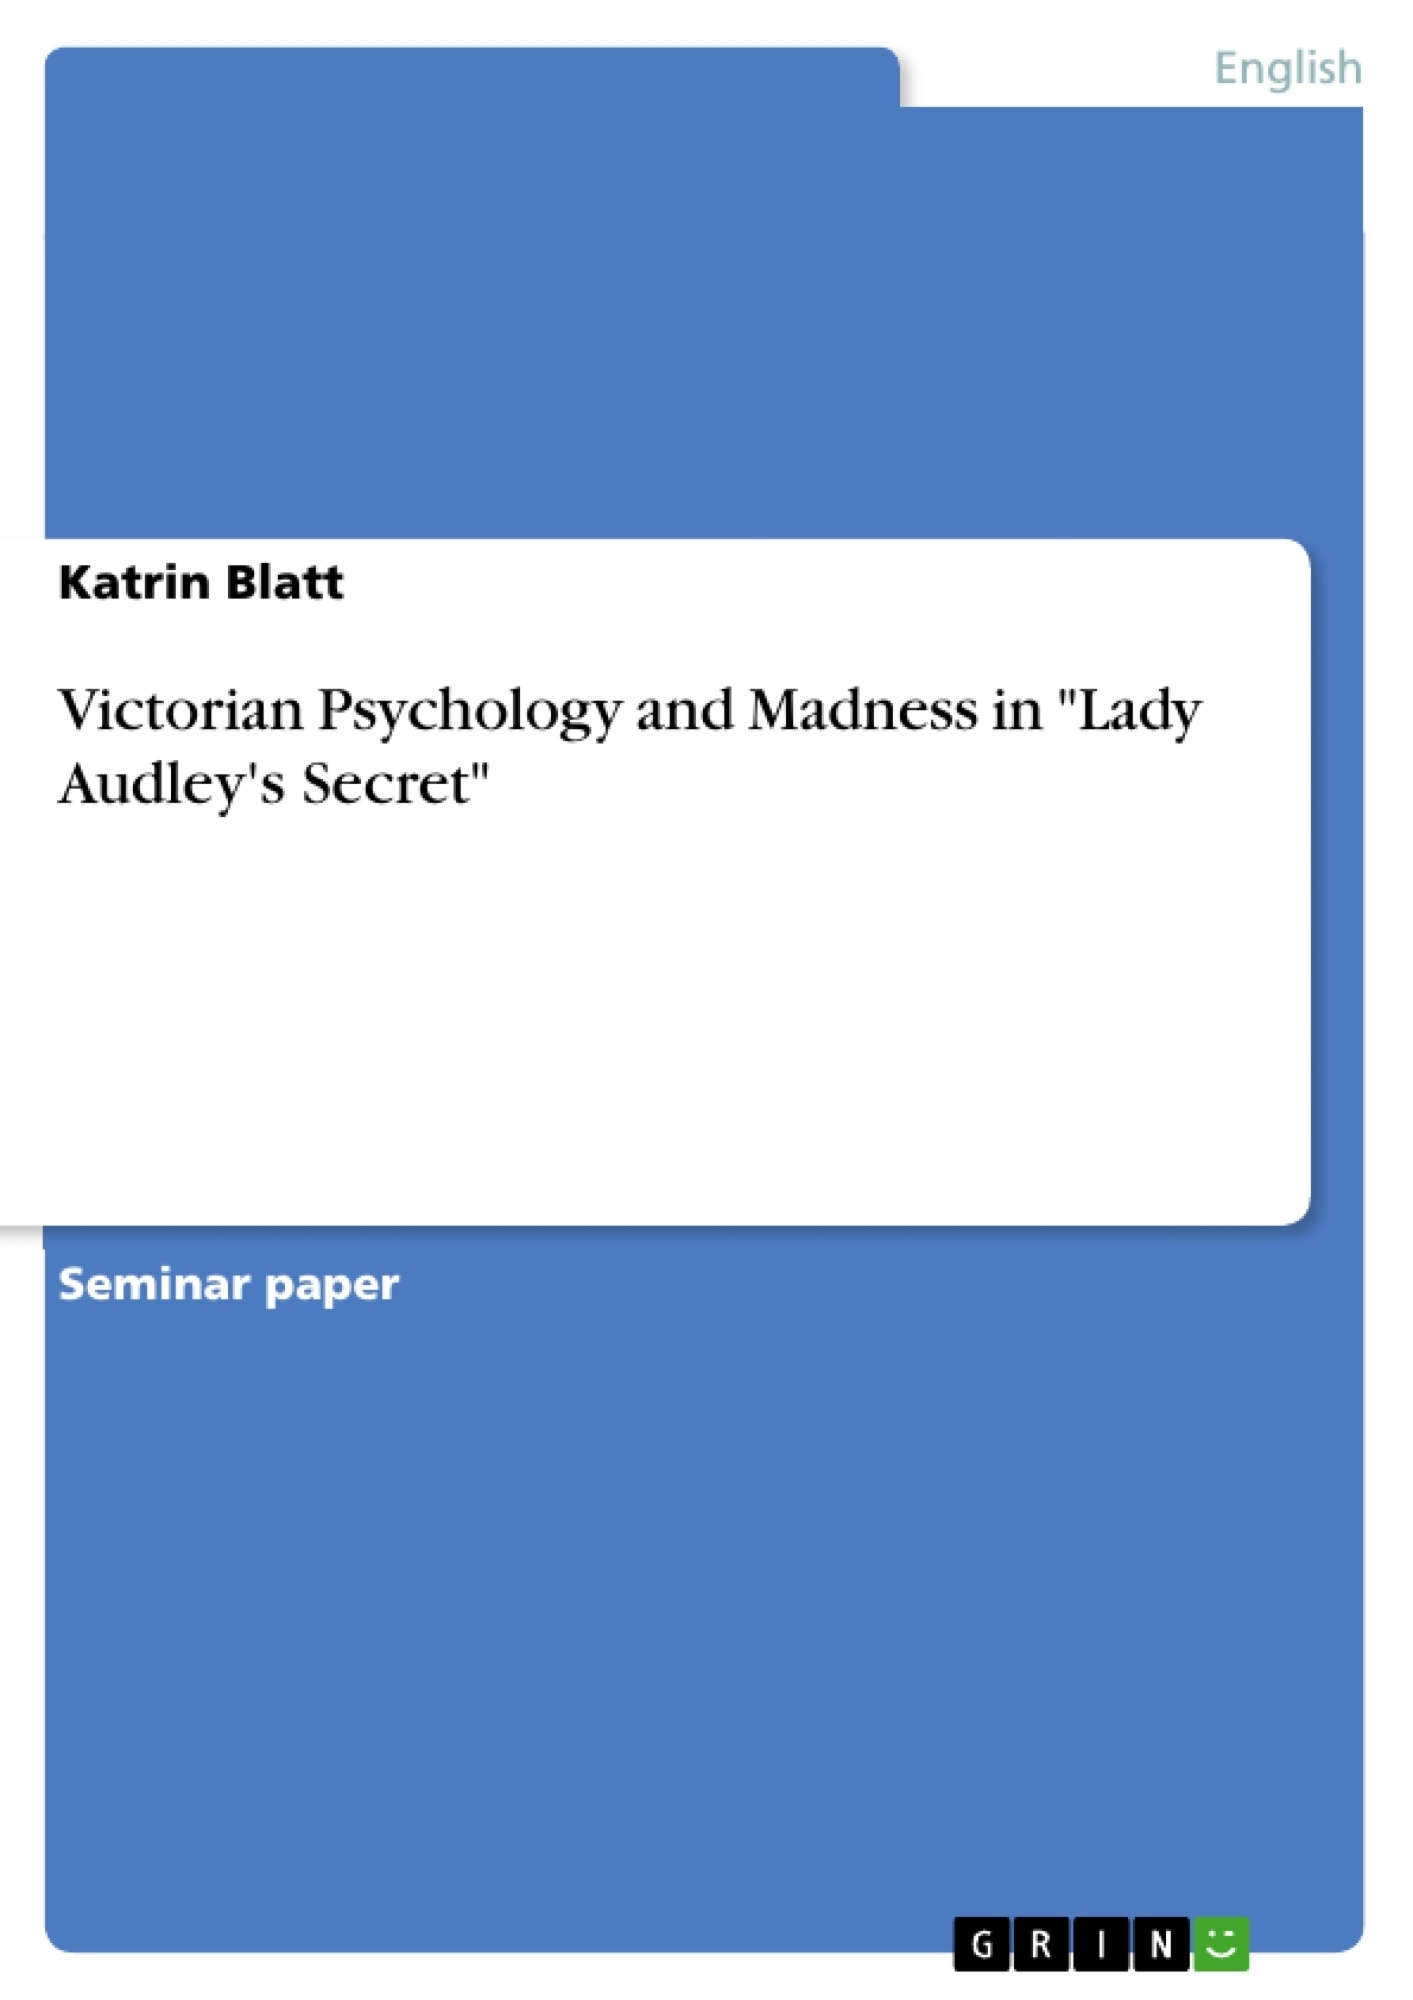 """Title: Victorian Psychology and Madness in """"Lady Audley's Secret"""""""